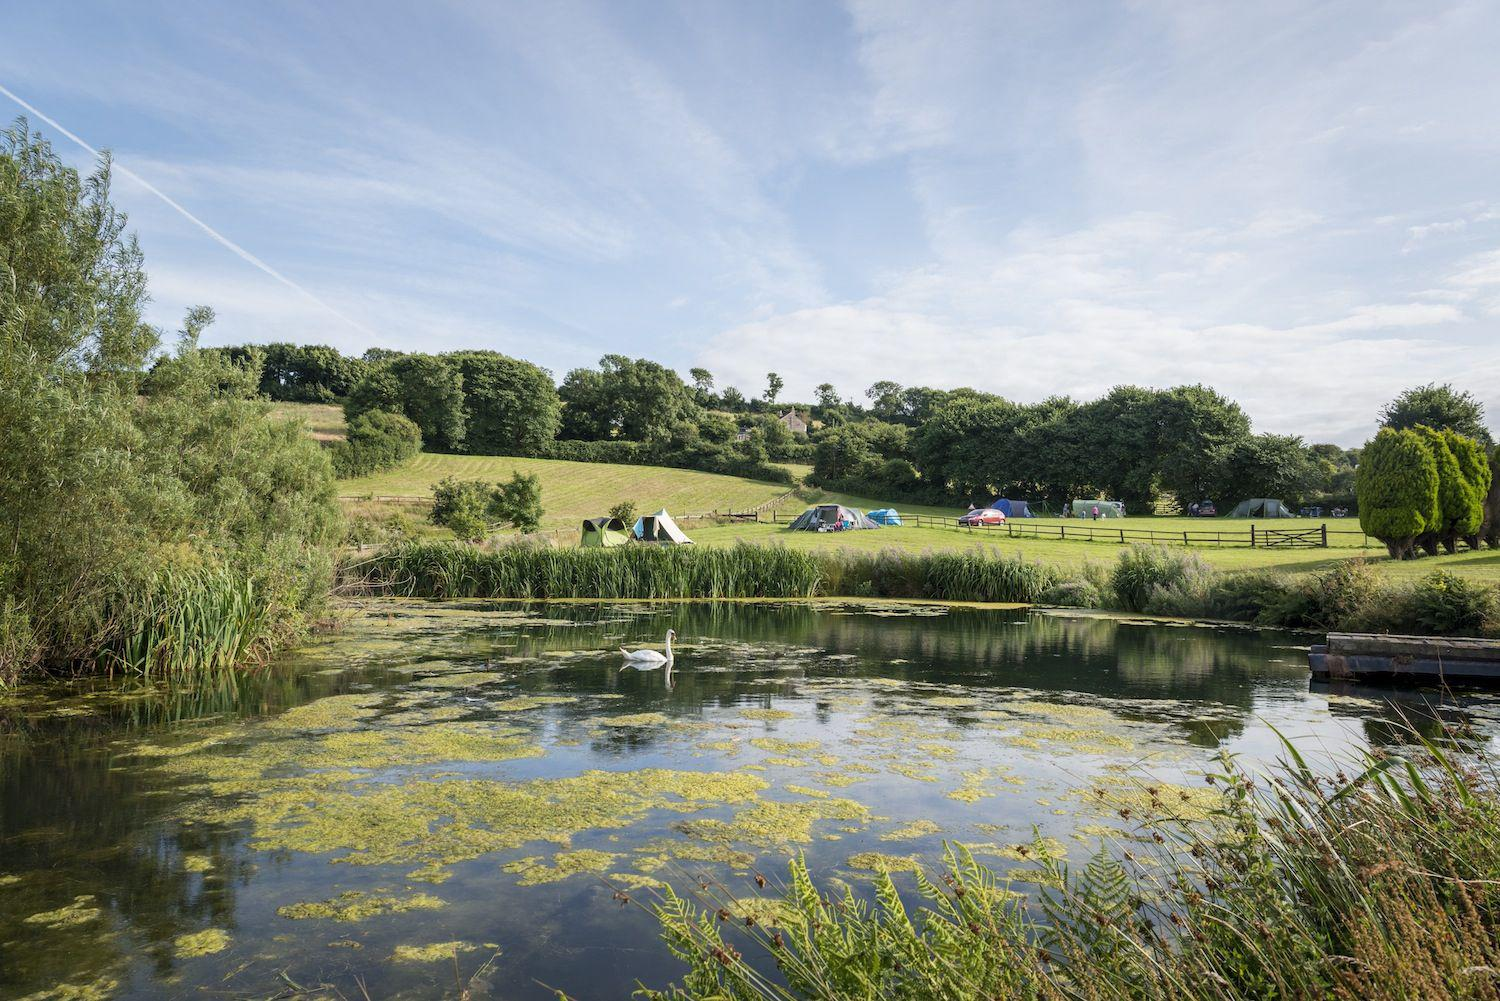 Salcombe Camping | Best campsites in Salcombe, Devon